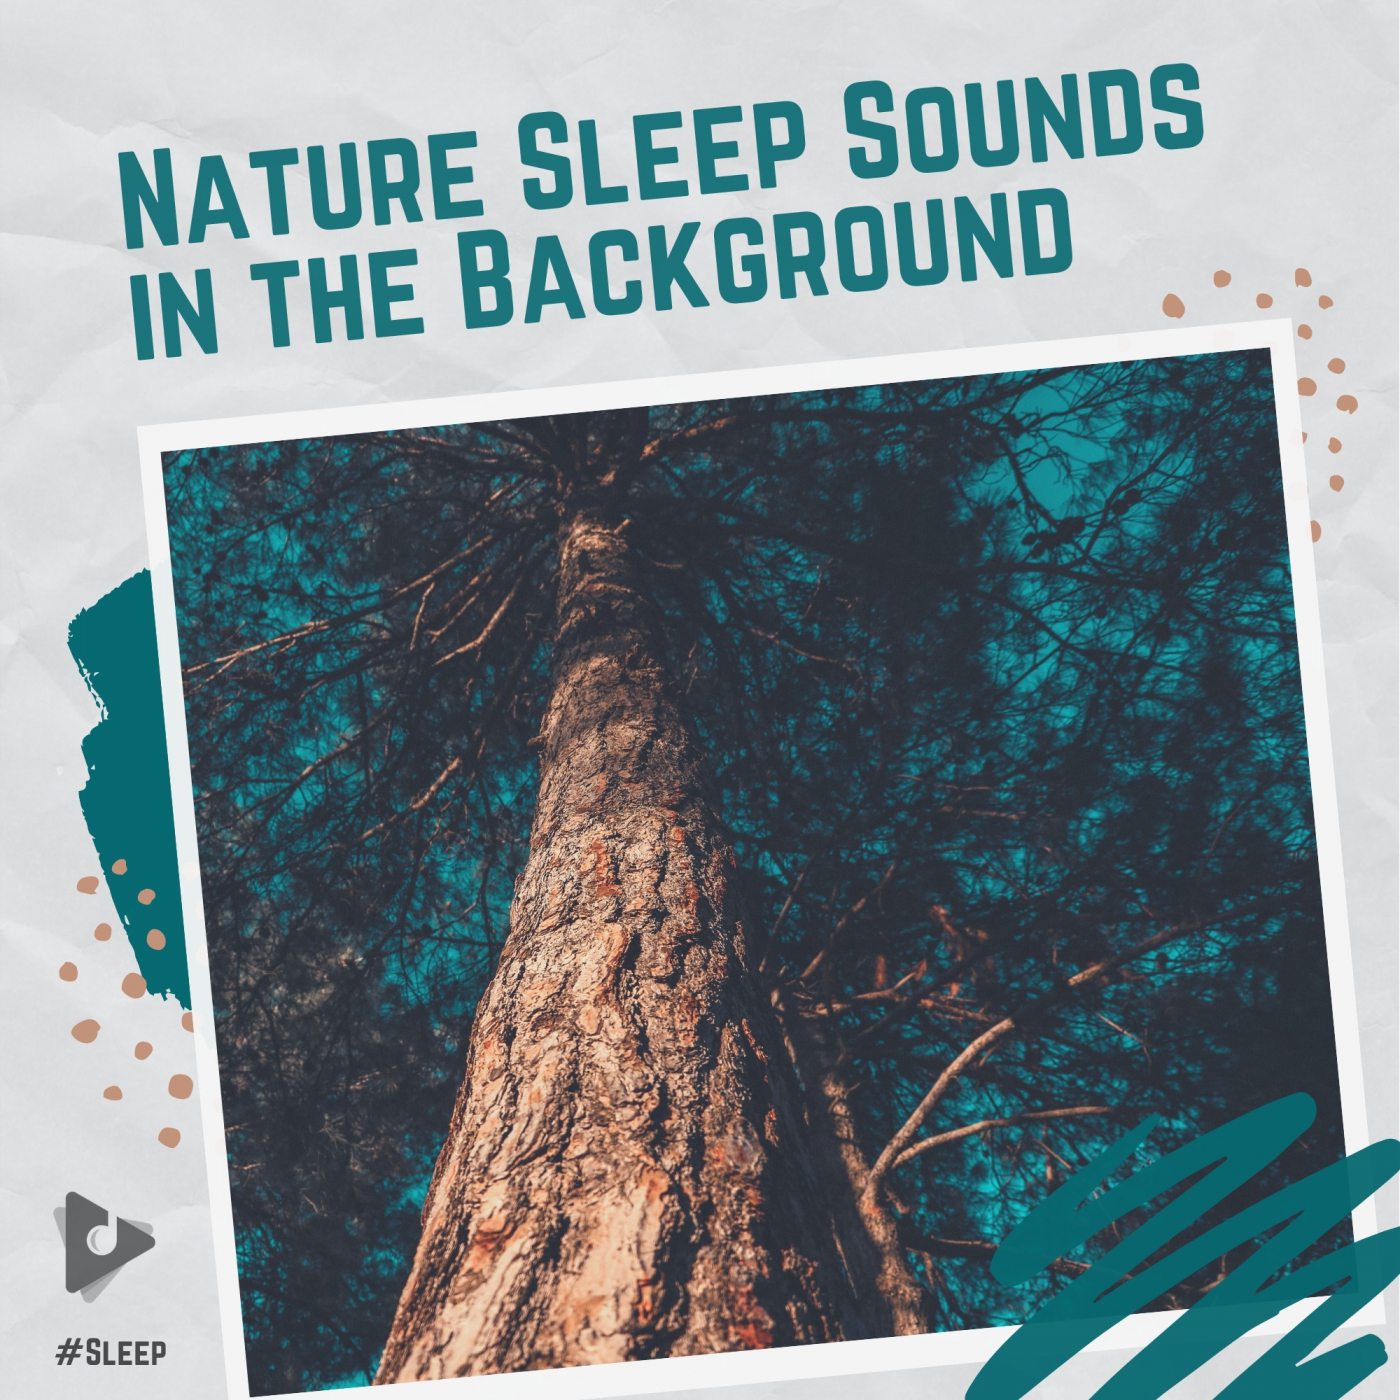 Nature Sleep Sounds in the Background